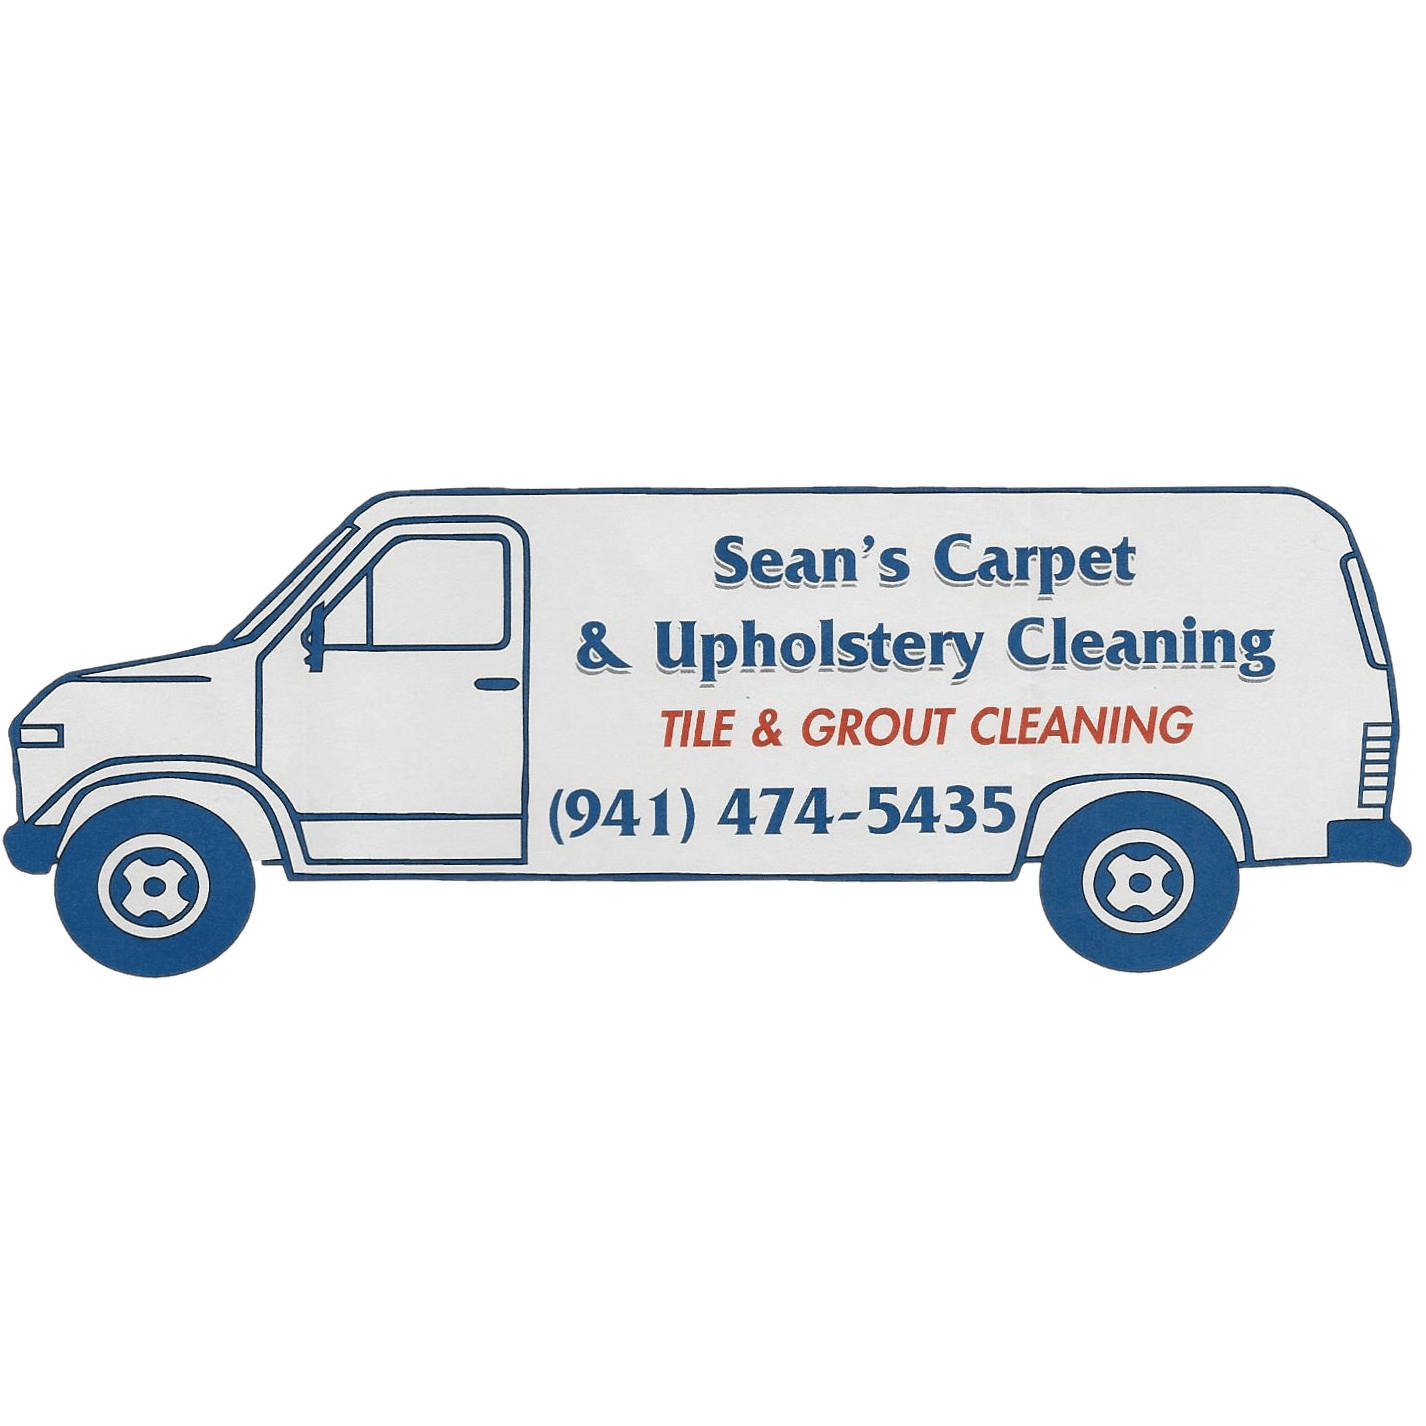 Sean's Carpet & Upholstery Cleaning image 3